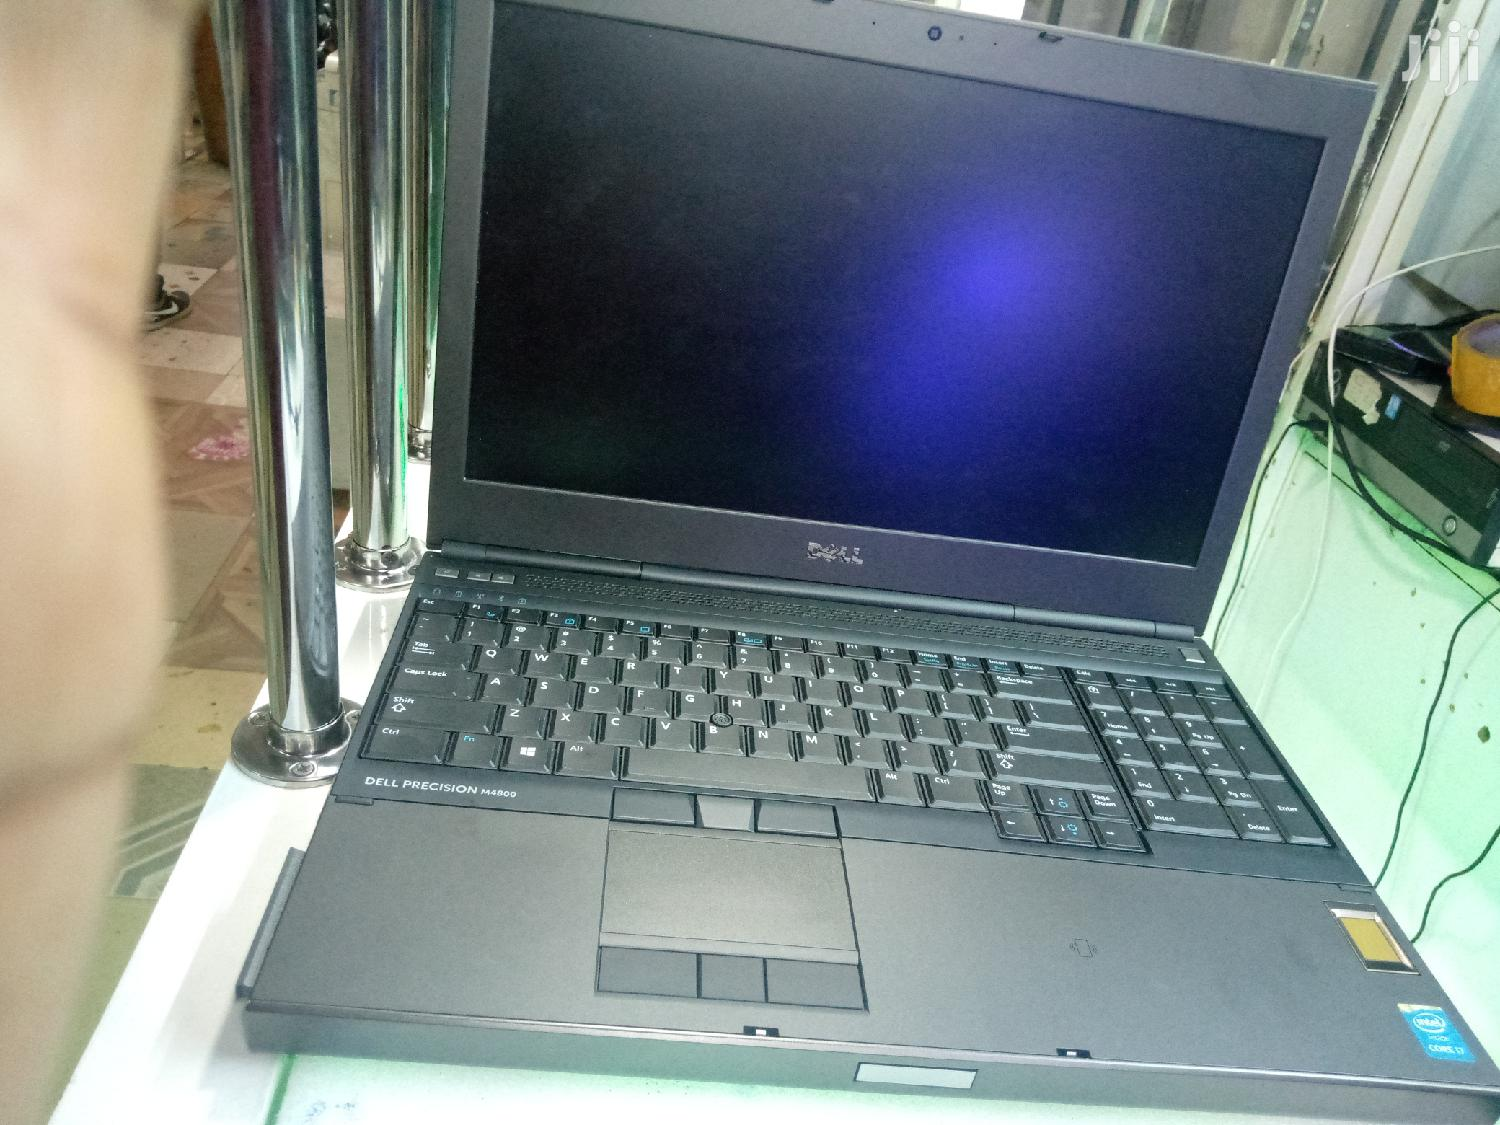 Laptop Dell Precision M4800 8GB Intel Core I7 HDD 500GB | Laptops & Computers for sale in Nairobi Central, Nairobi, Kenya